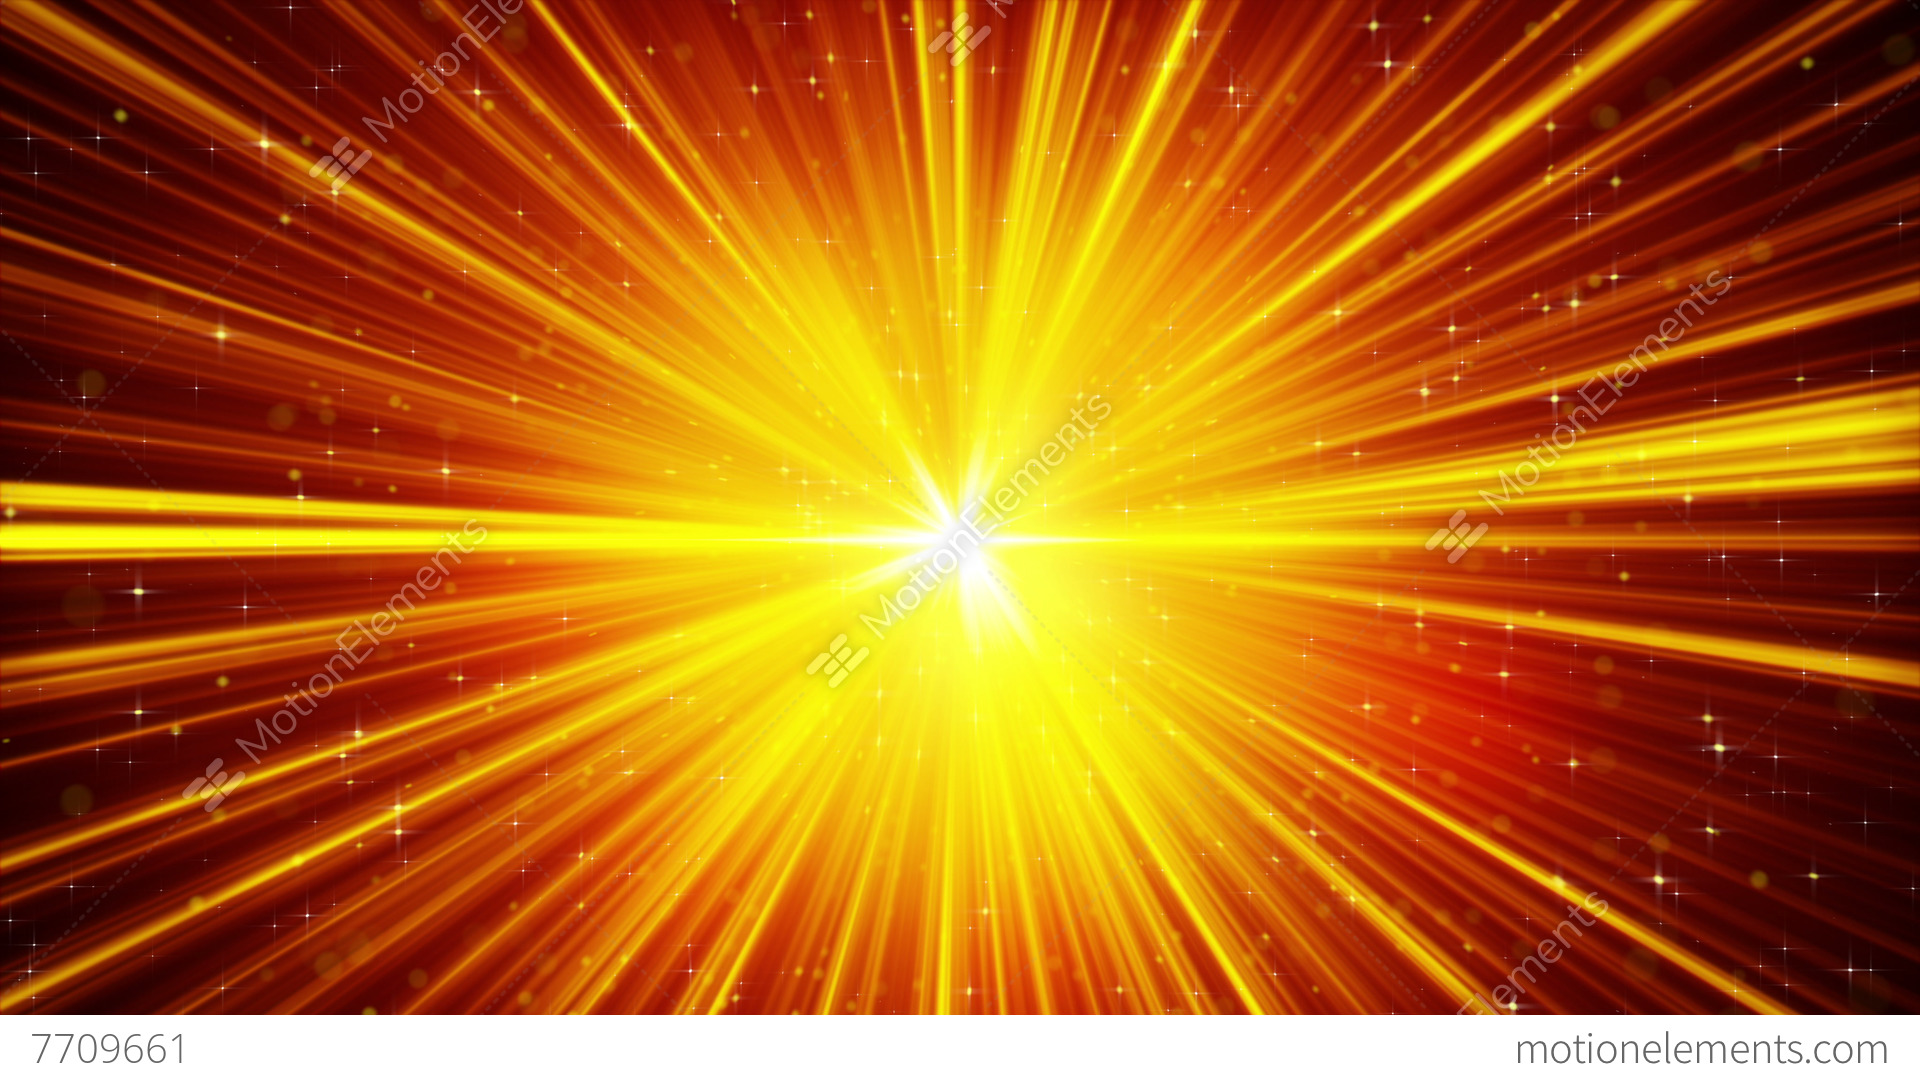 Yellow Shining Light Rays And Stars Loopable Background 4k ... for Yellow Light Rays Background  51ane